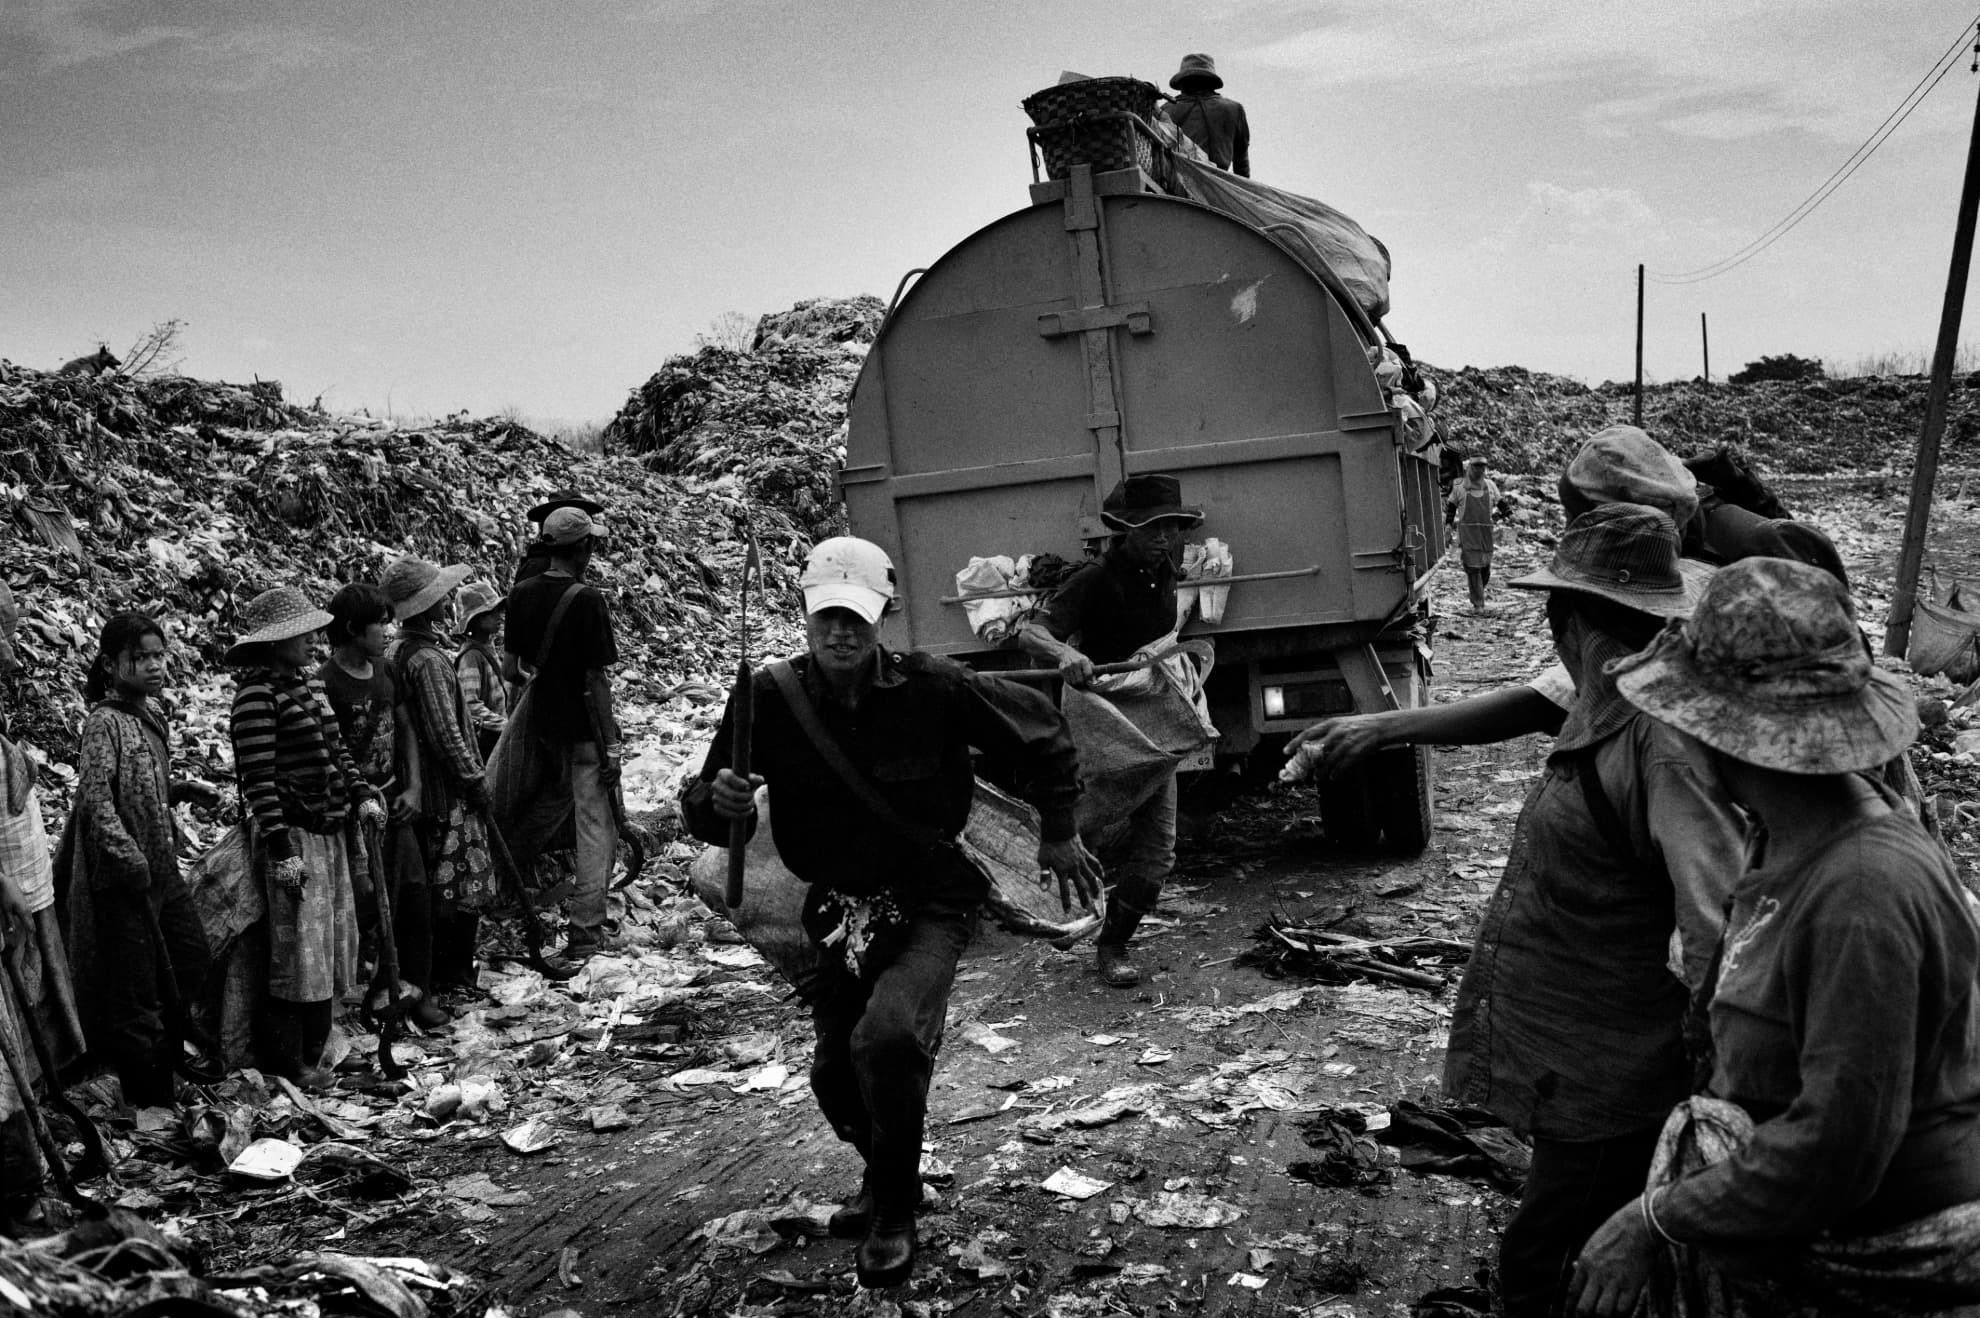 A rubbish lorry full of refuse that has not been previously sorted in the local recycling plant arrives at the dump. As it promises a more profitable harvest of recyclable material, people rush to be the first to sort through it.